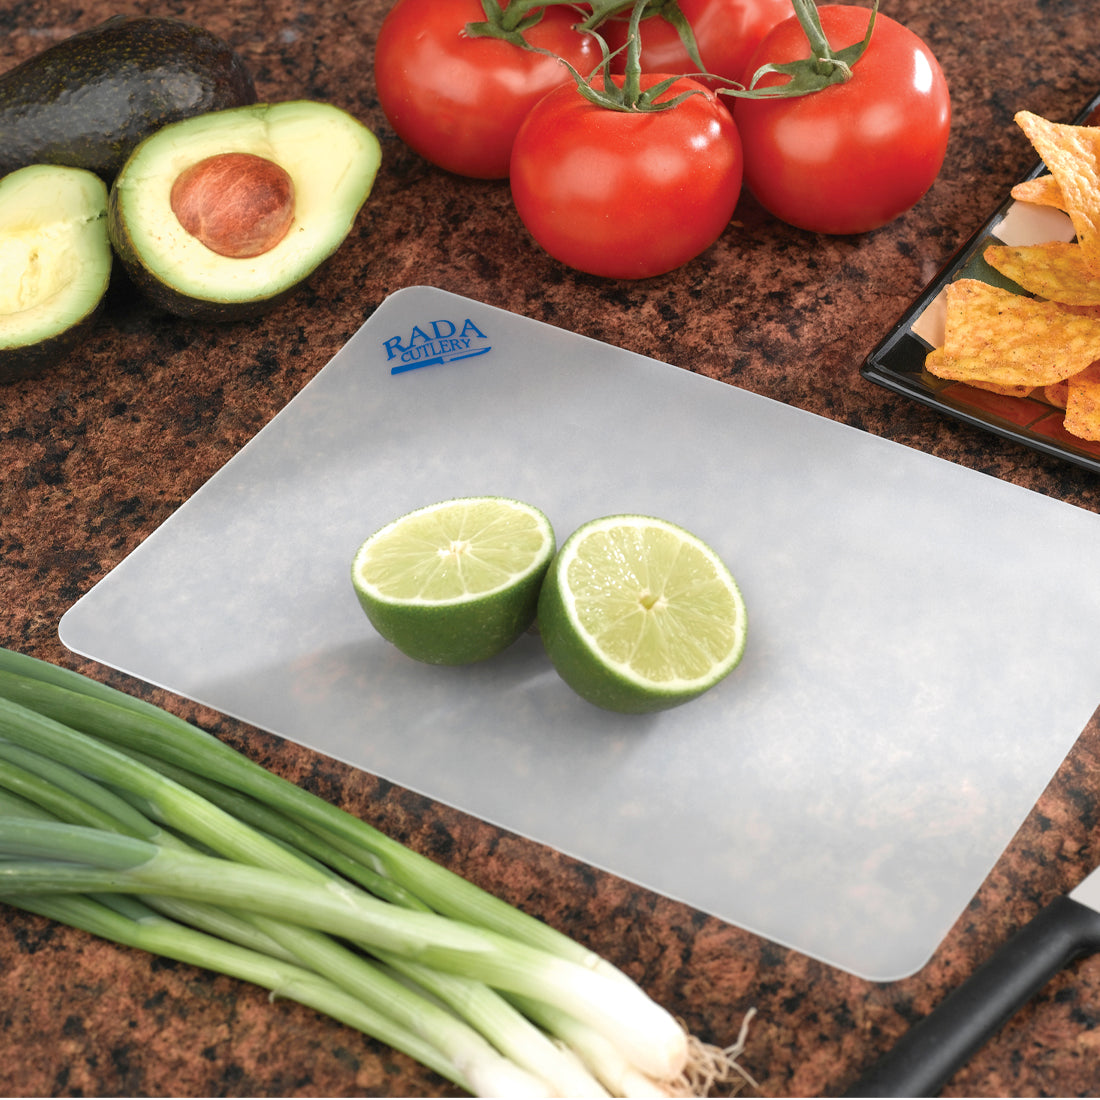 Lime halves on small plastic cutting board with onions, avocados, tomatoes and Rada knife.